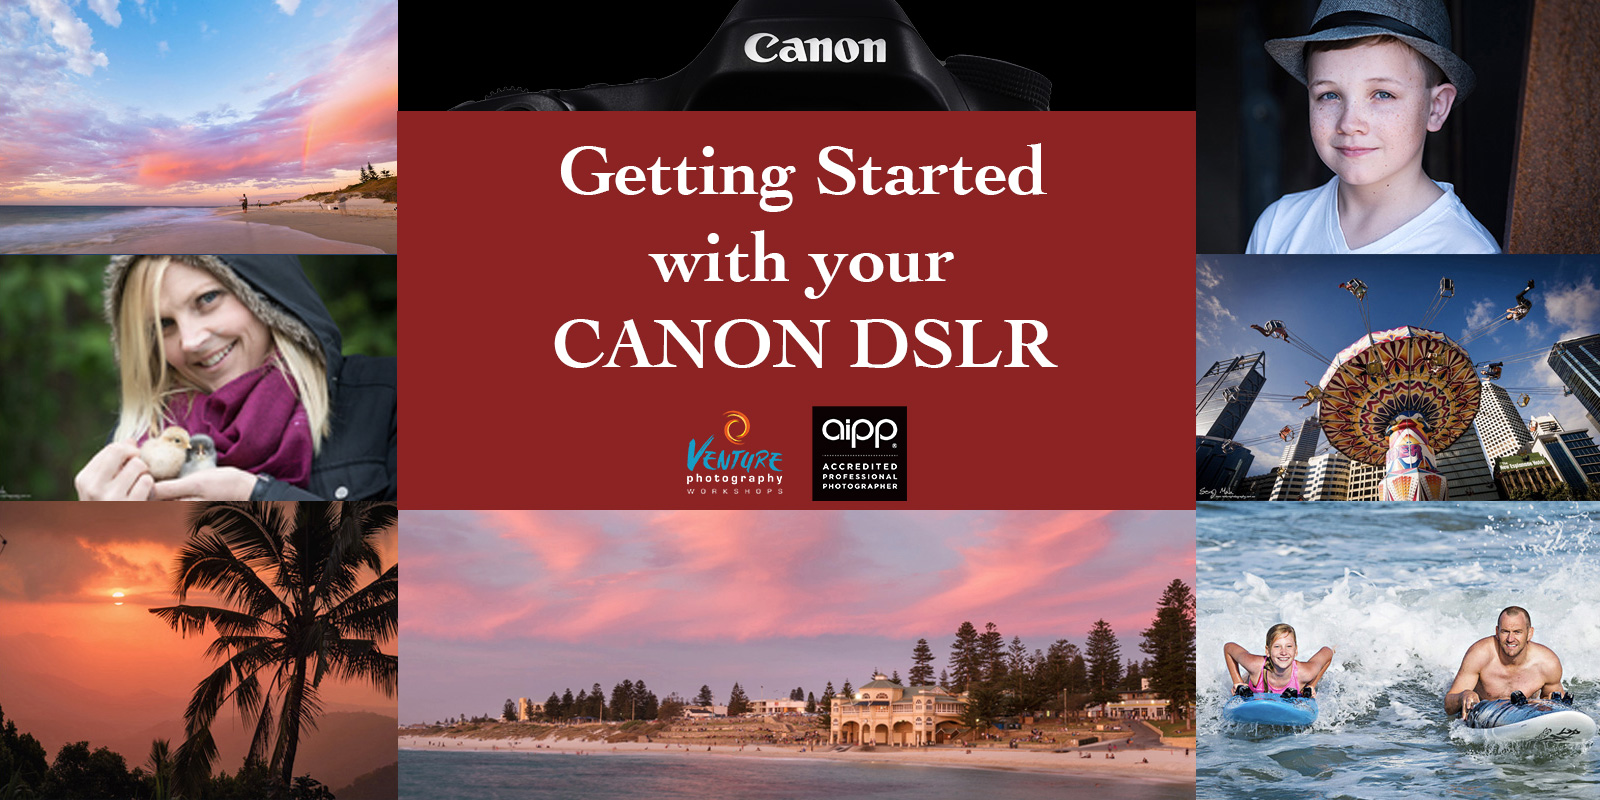 Getting Started with your Canon DSLR